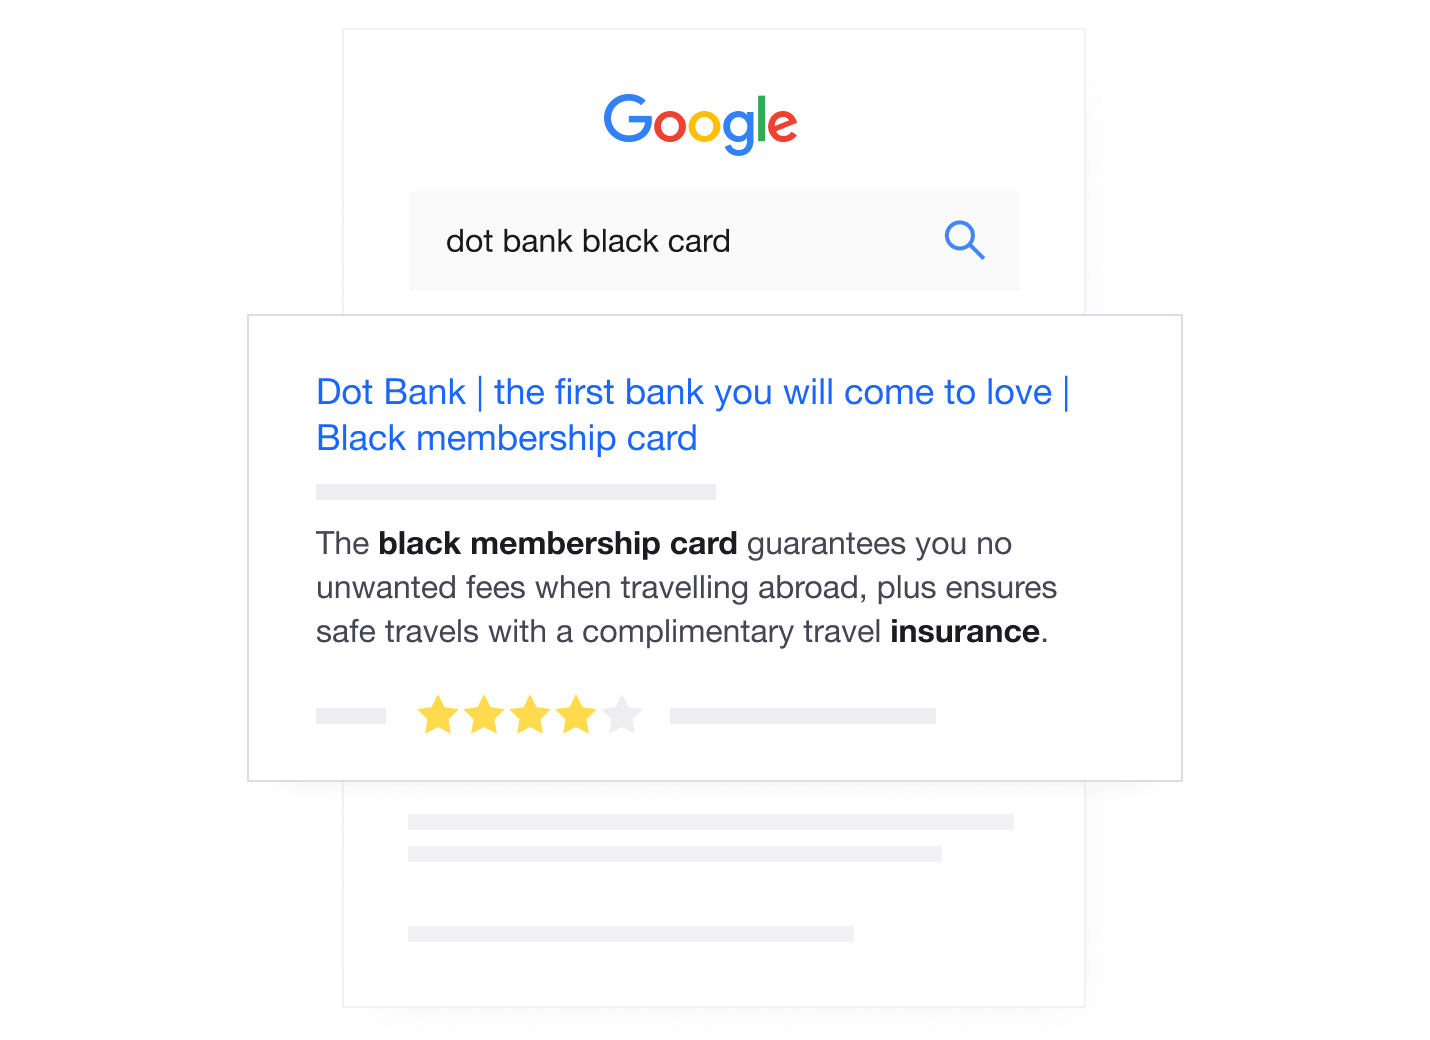 Trustpilot Product Reviews on Google search